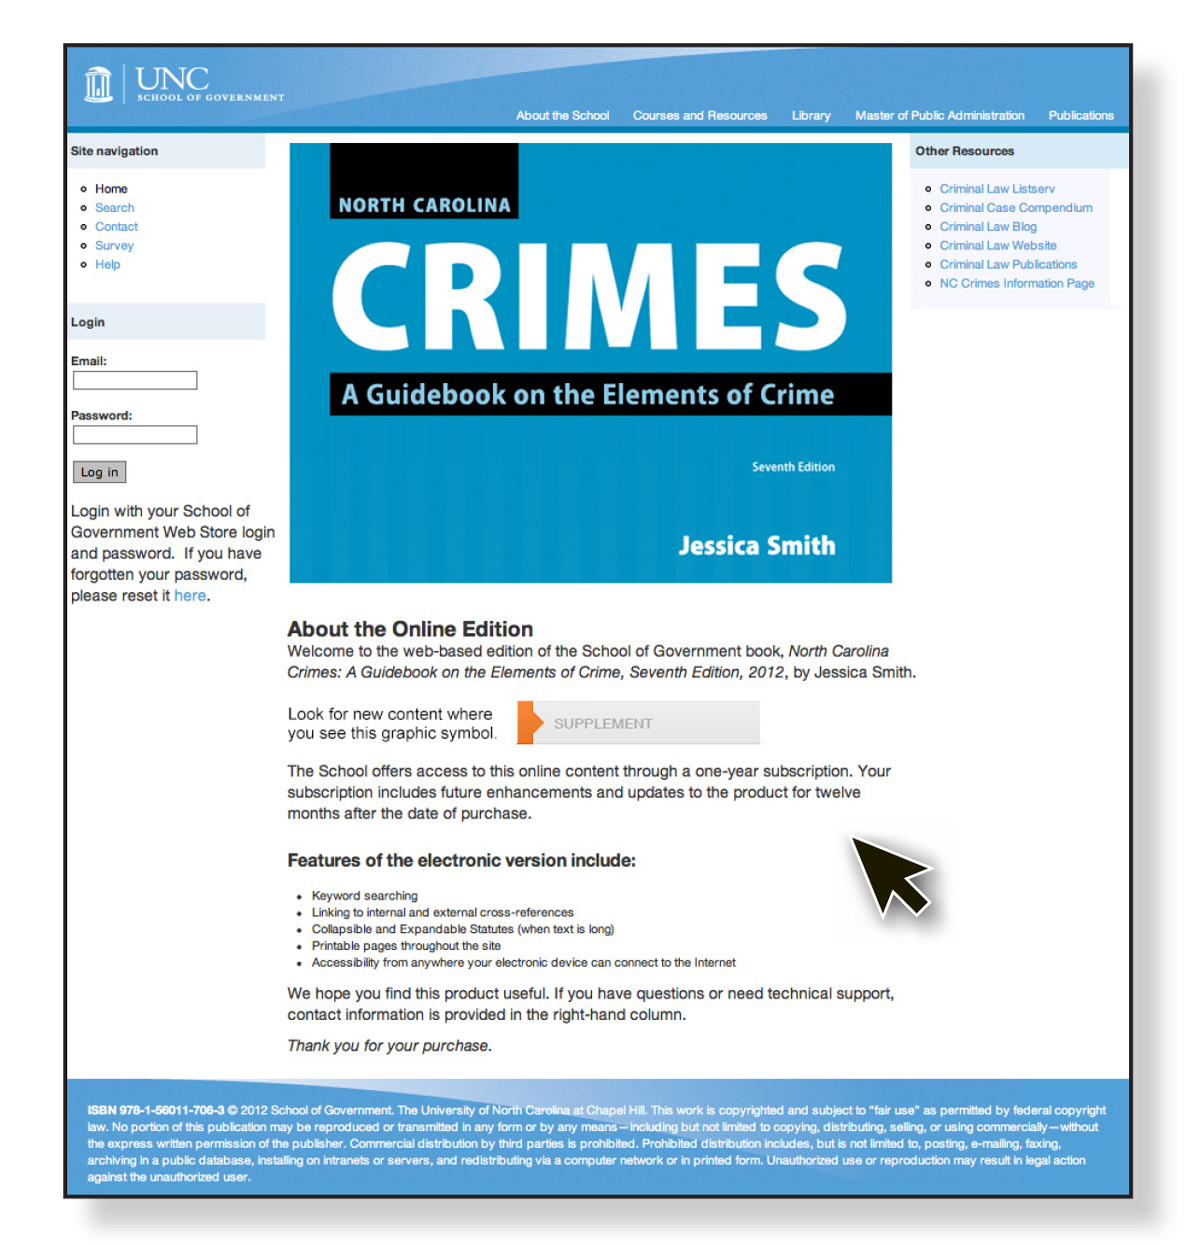 North Carolina Crimes: A Guidebook on the Elements of Crime online edition